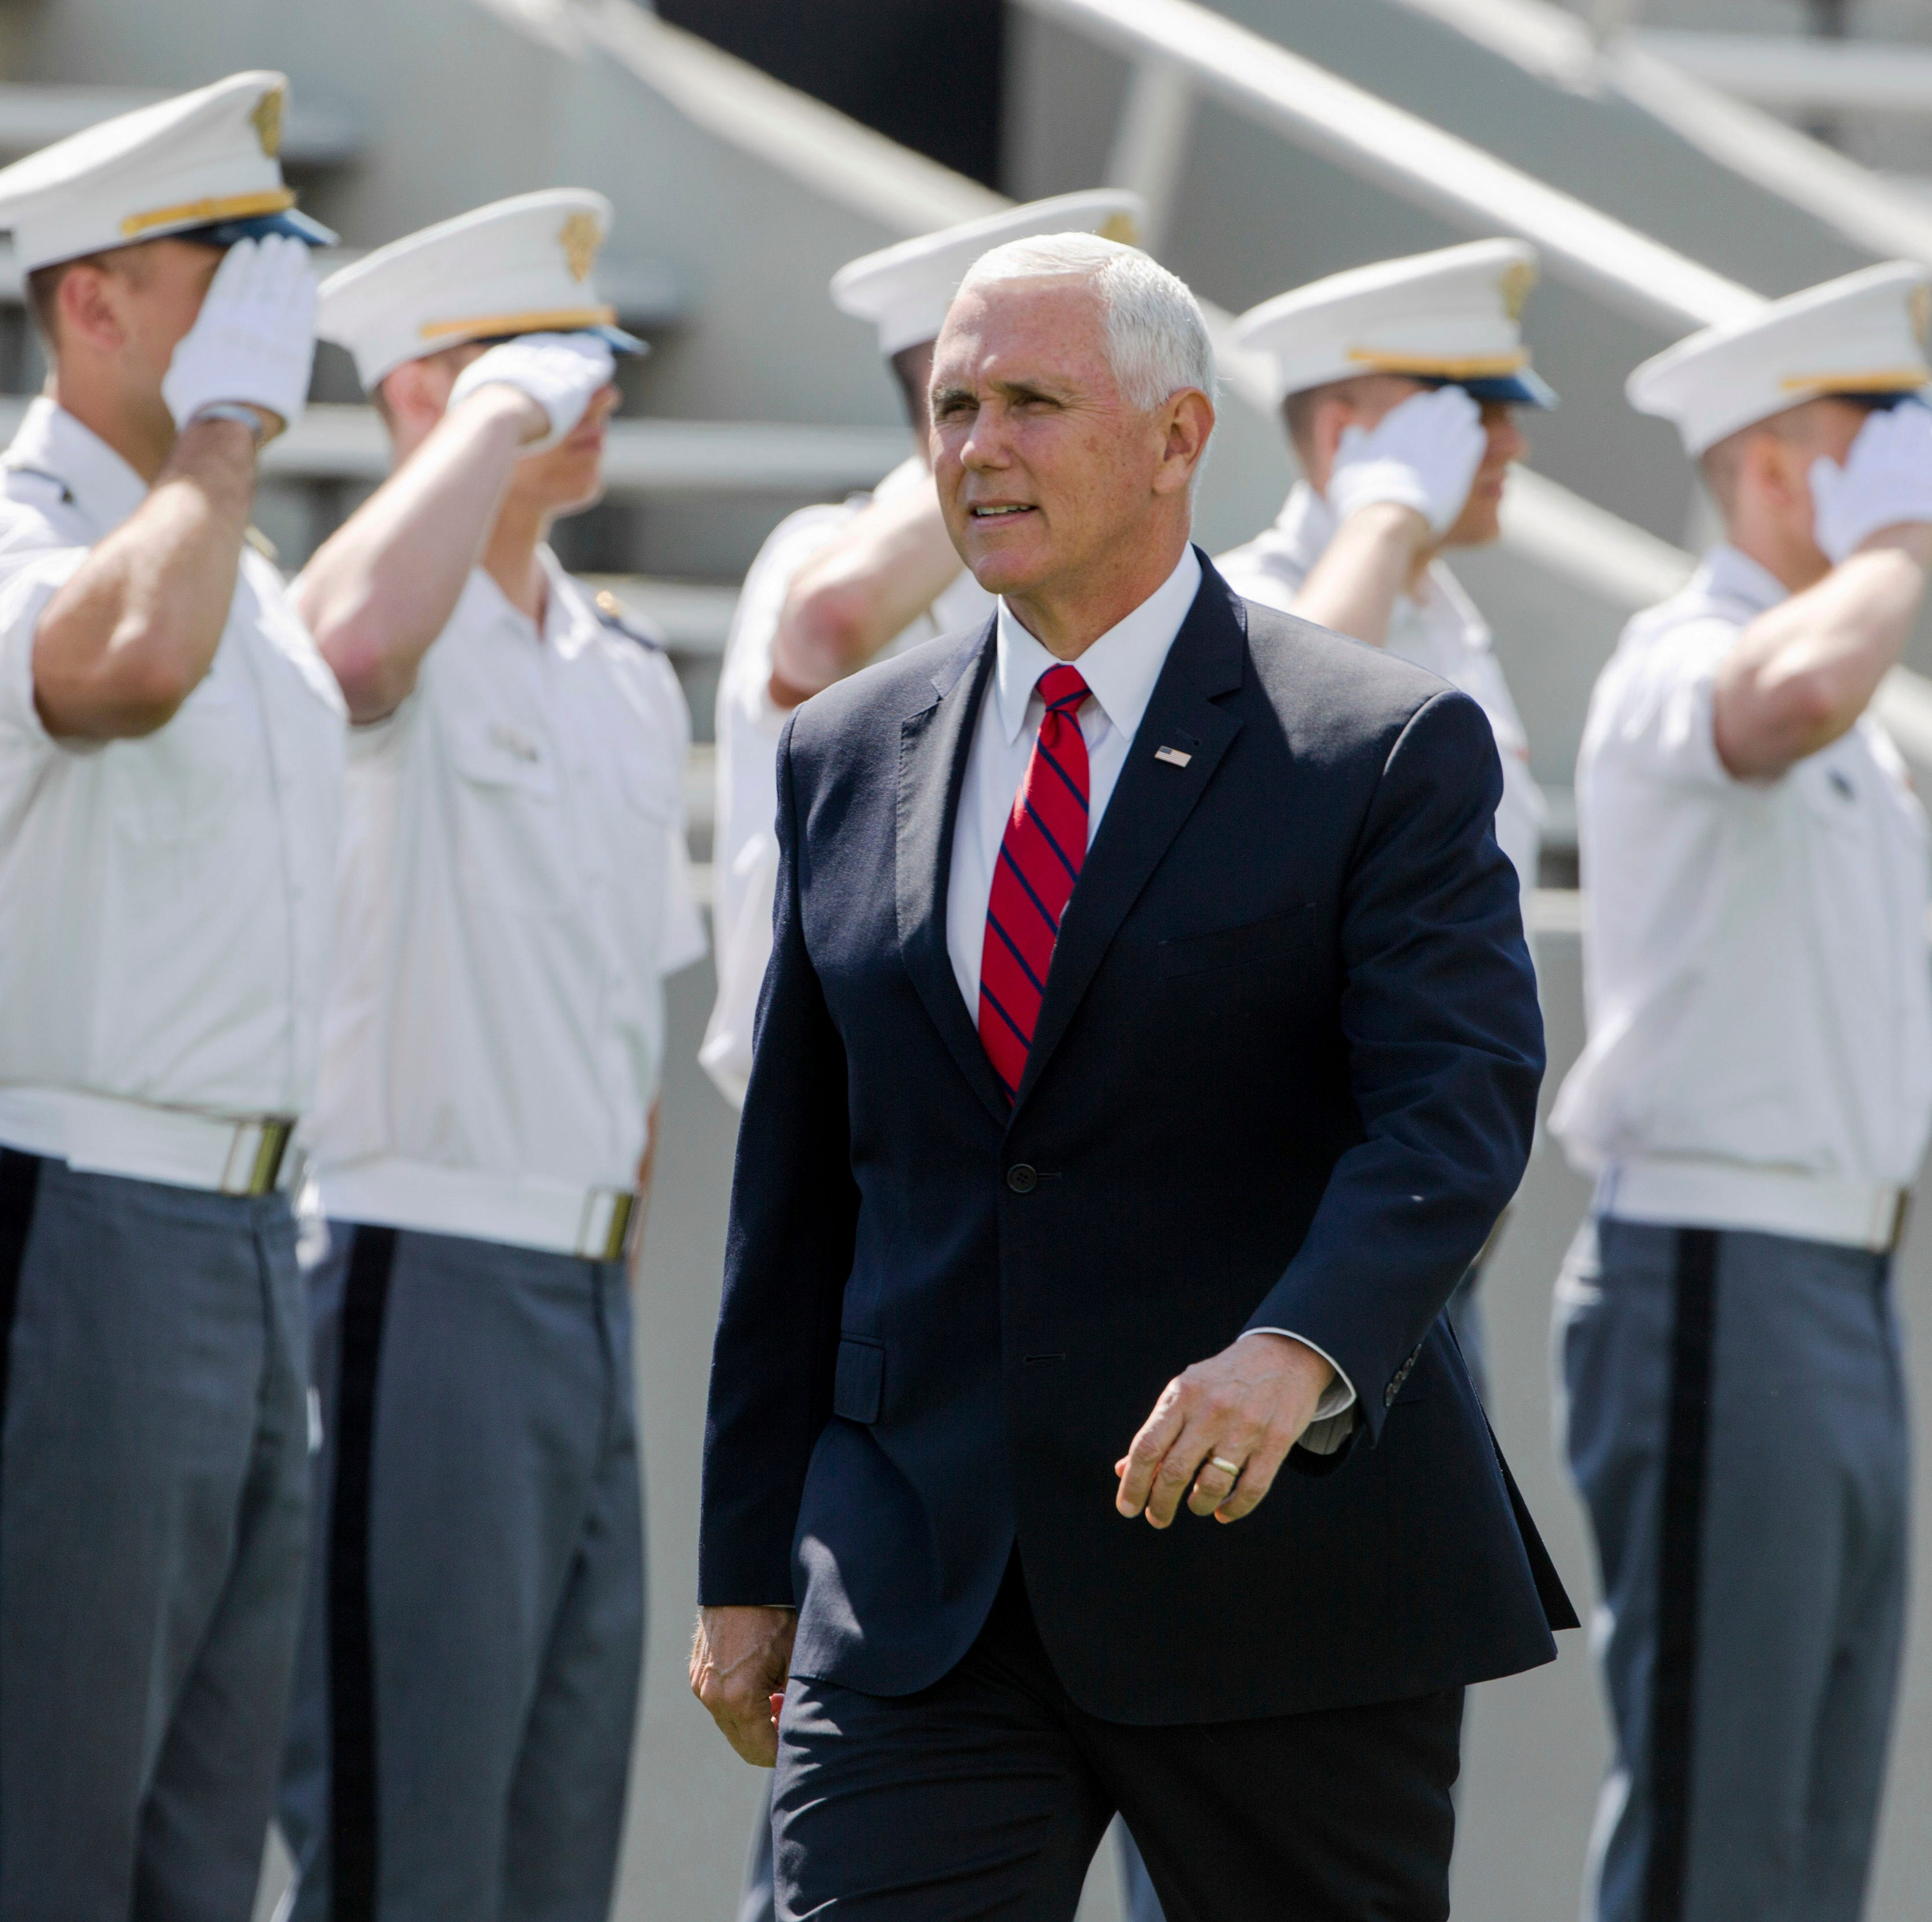 Mike Pence, speaking at West Point, calls Trump 'the best friend' US military 'will ever have'